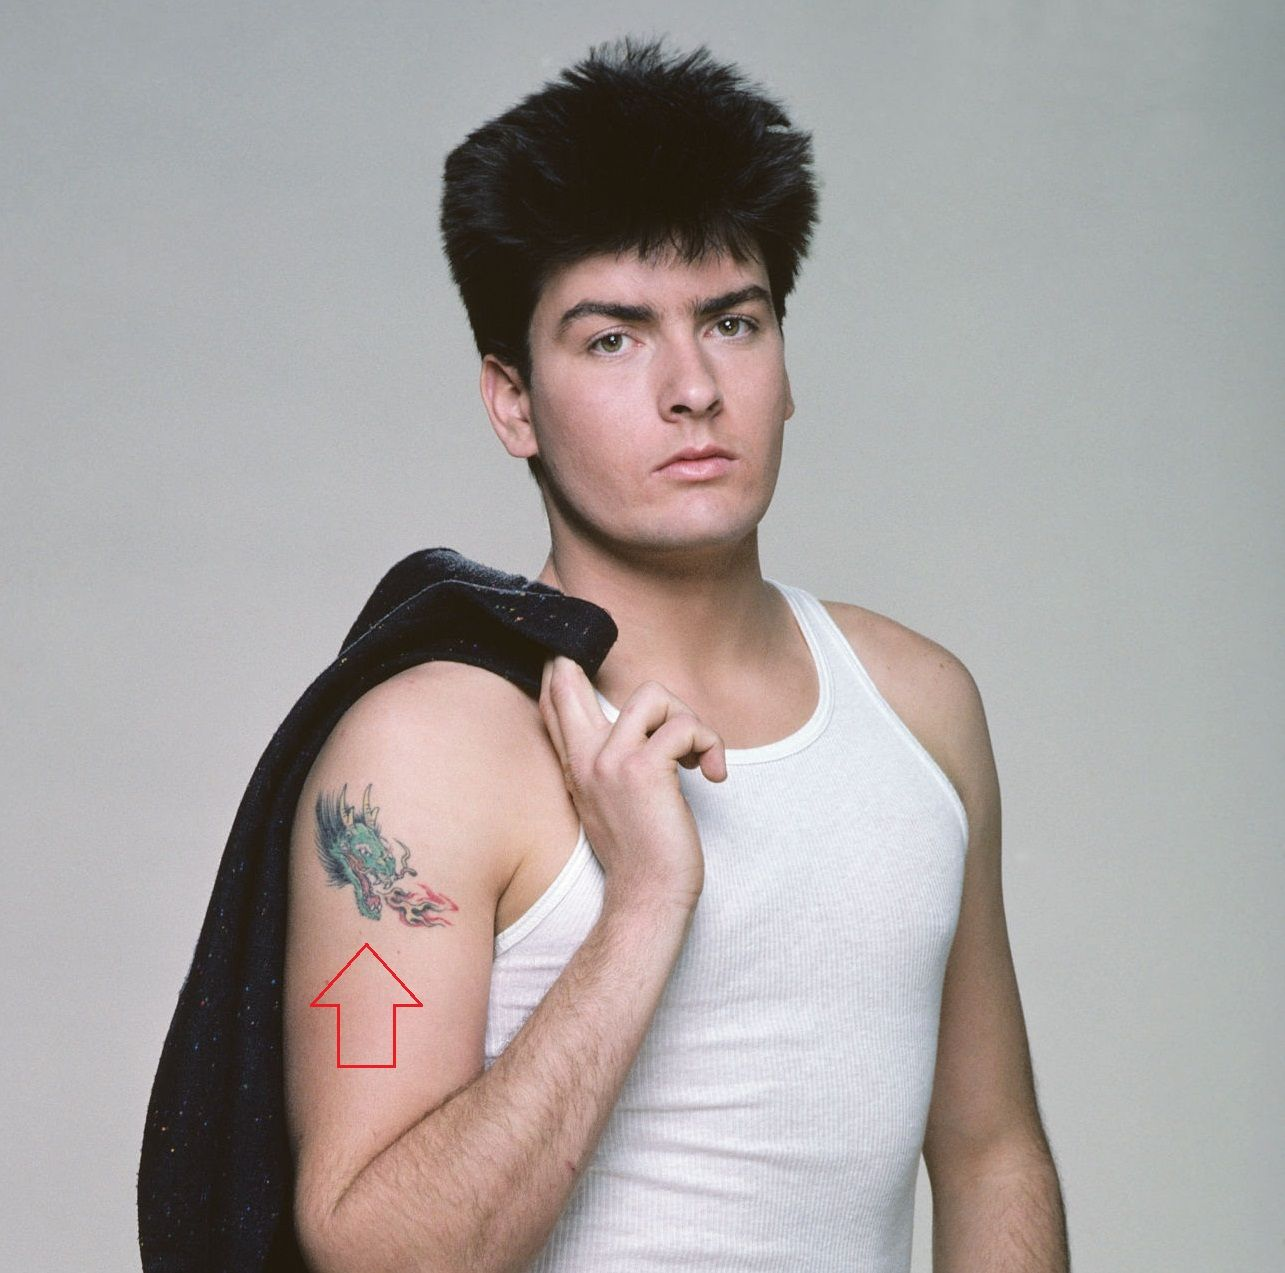 Charlie Sheen Right Arm Dragon Tattoo